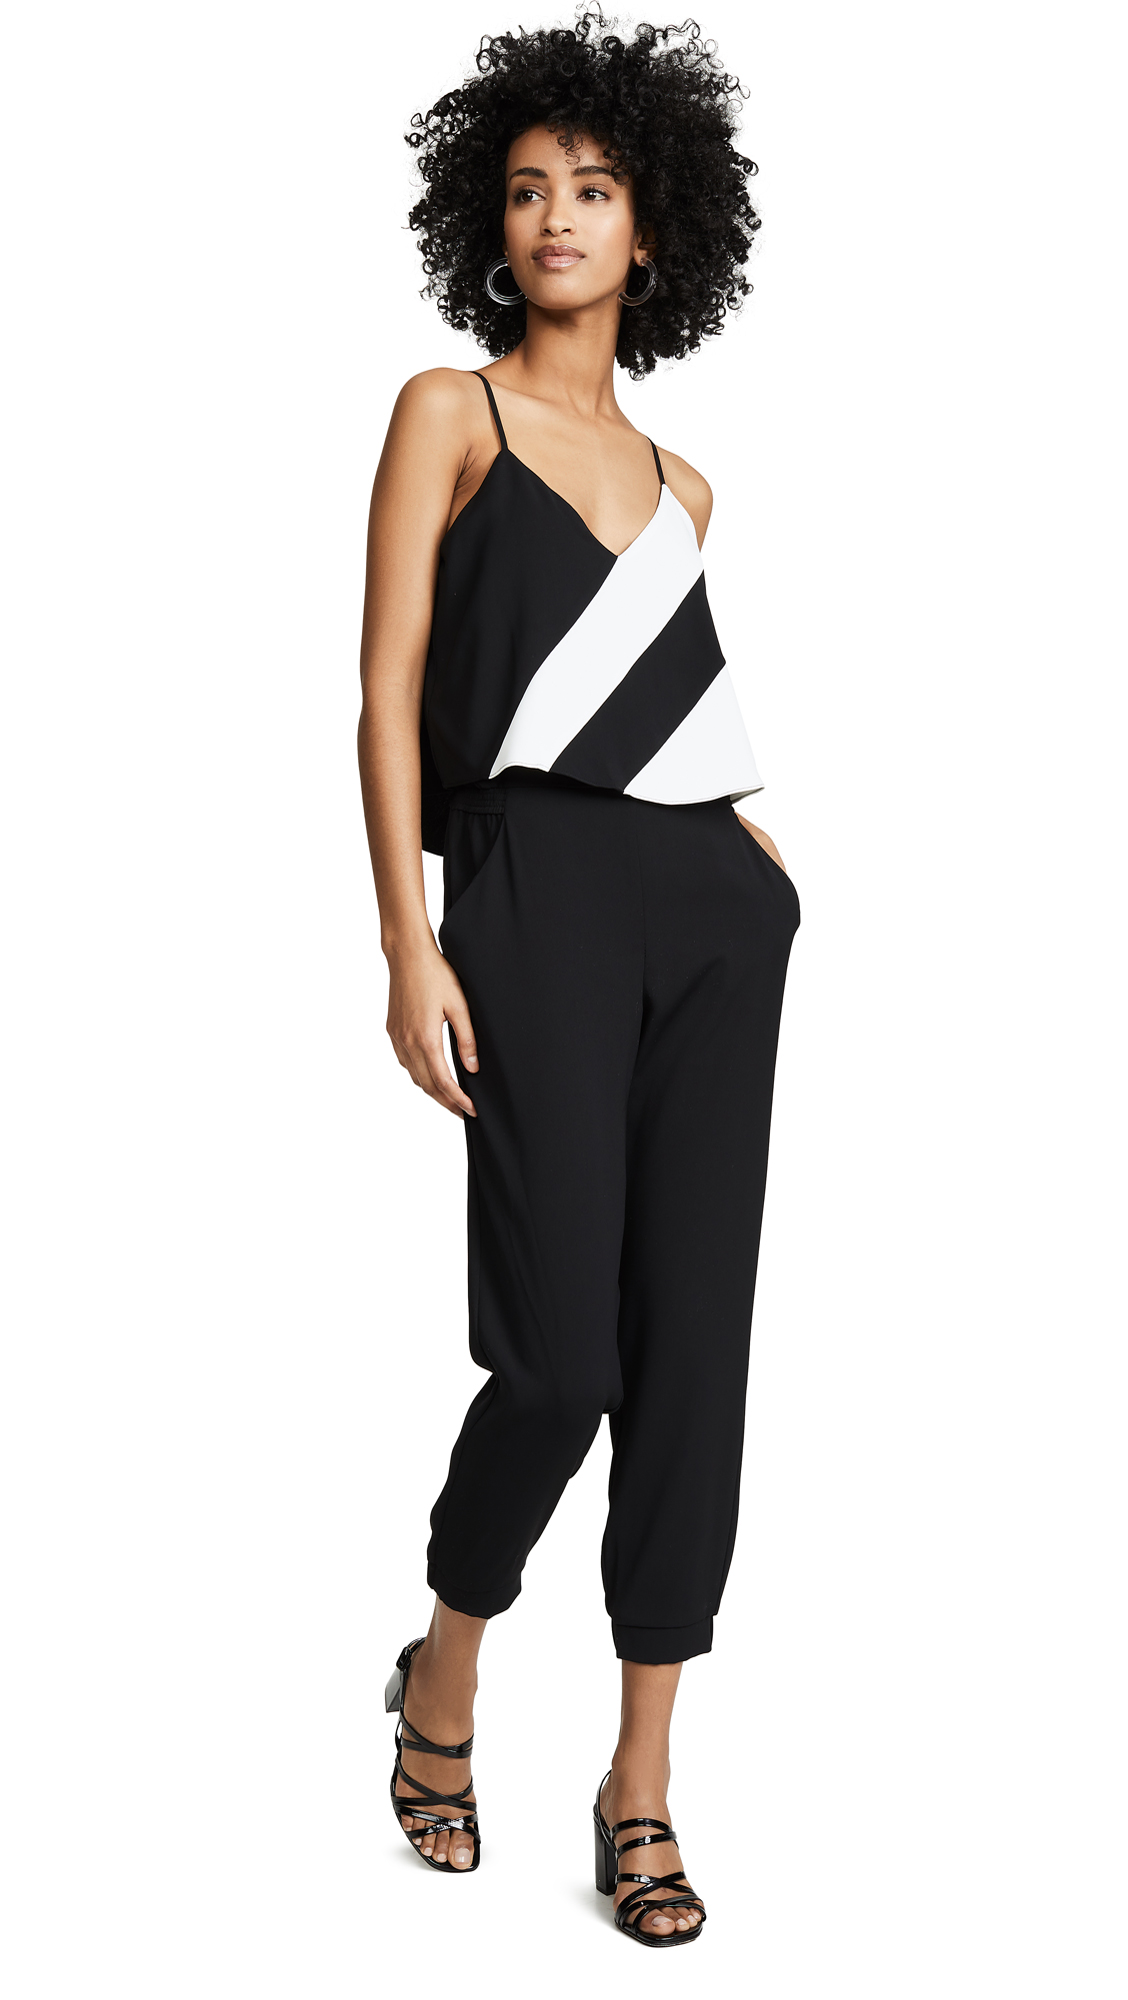 0b36075a6d00 DESIGNER JUMPSUITS and ROMPERS - Designer Jumpsuit Shop.com